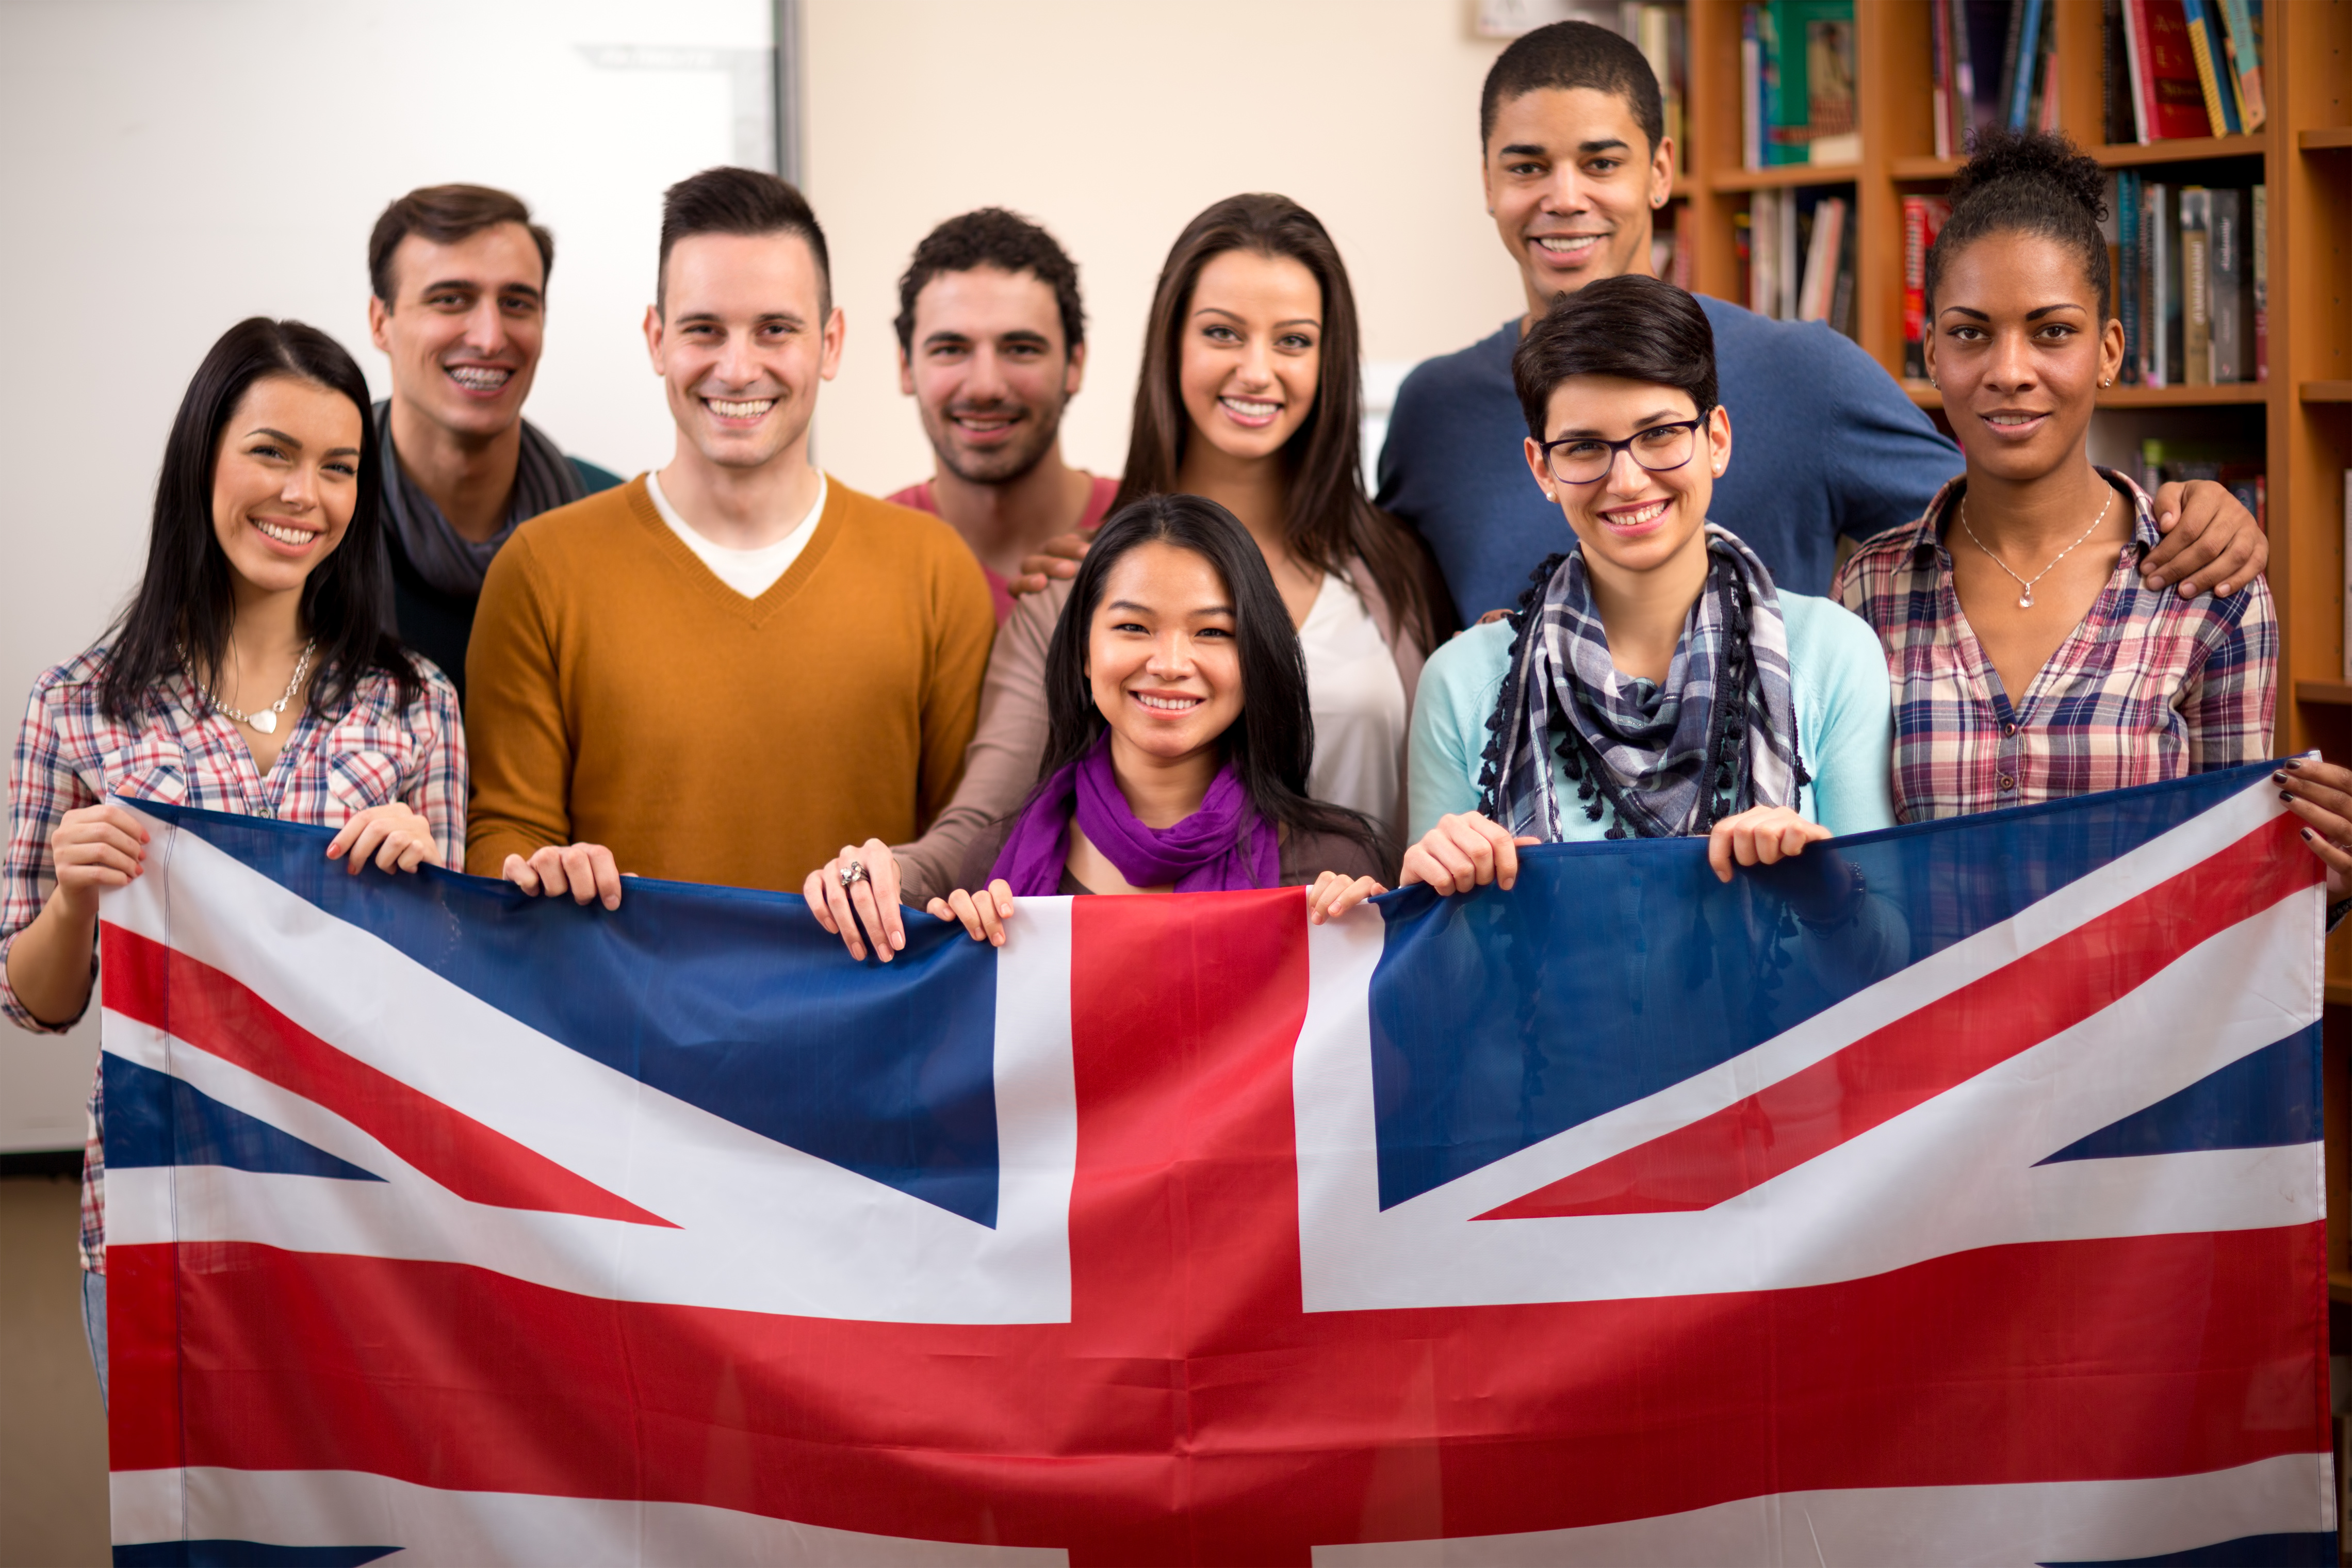 Group of British students presents their country and hold the flag